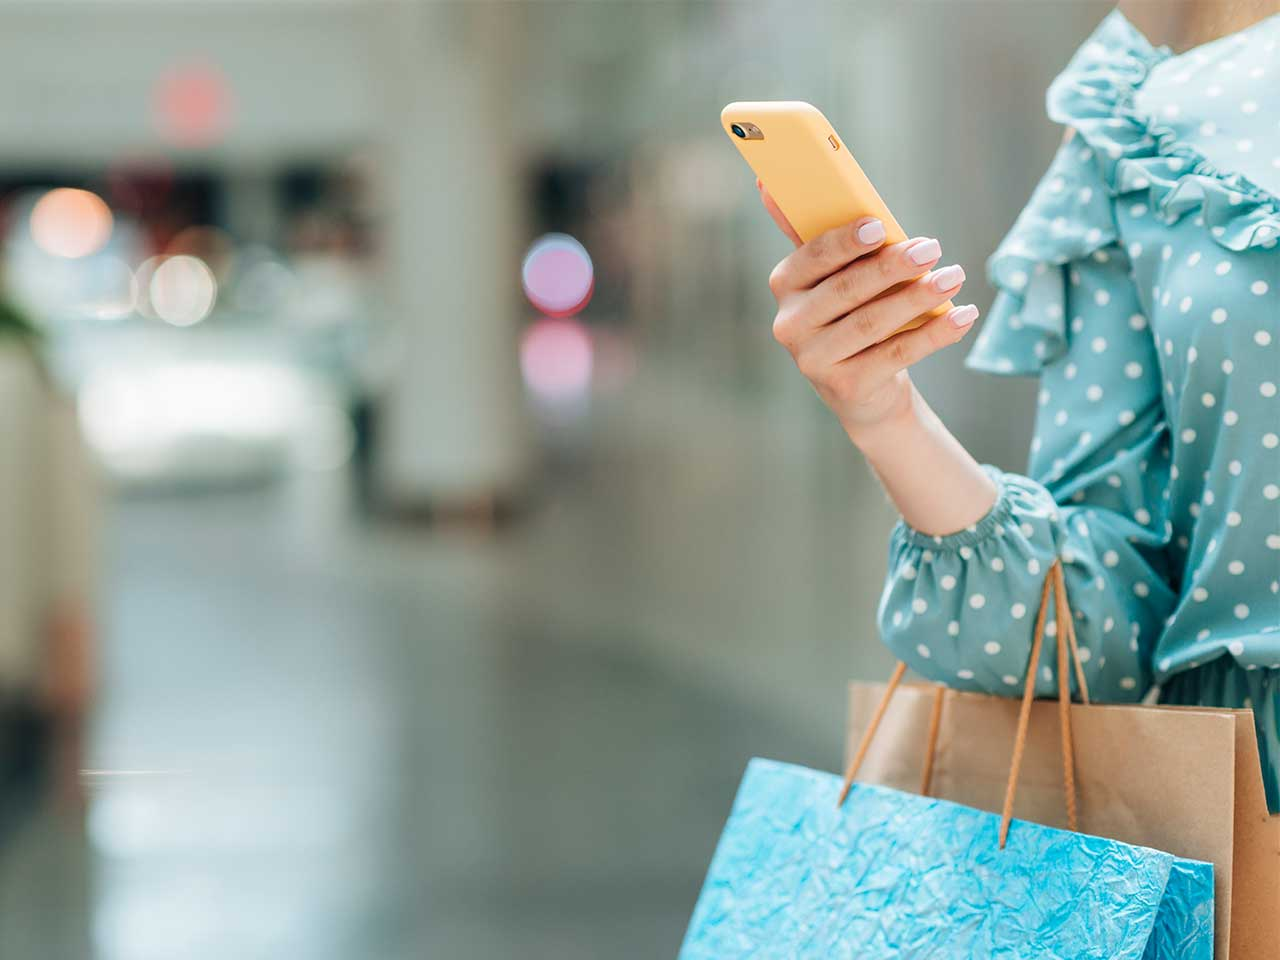 woman using her phone while holding a shopping bag